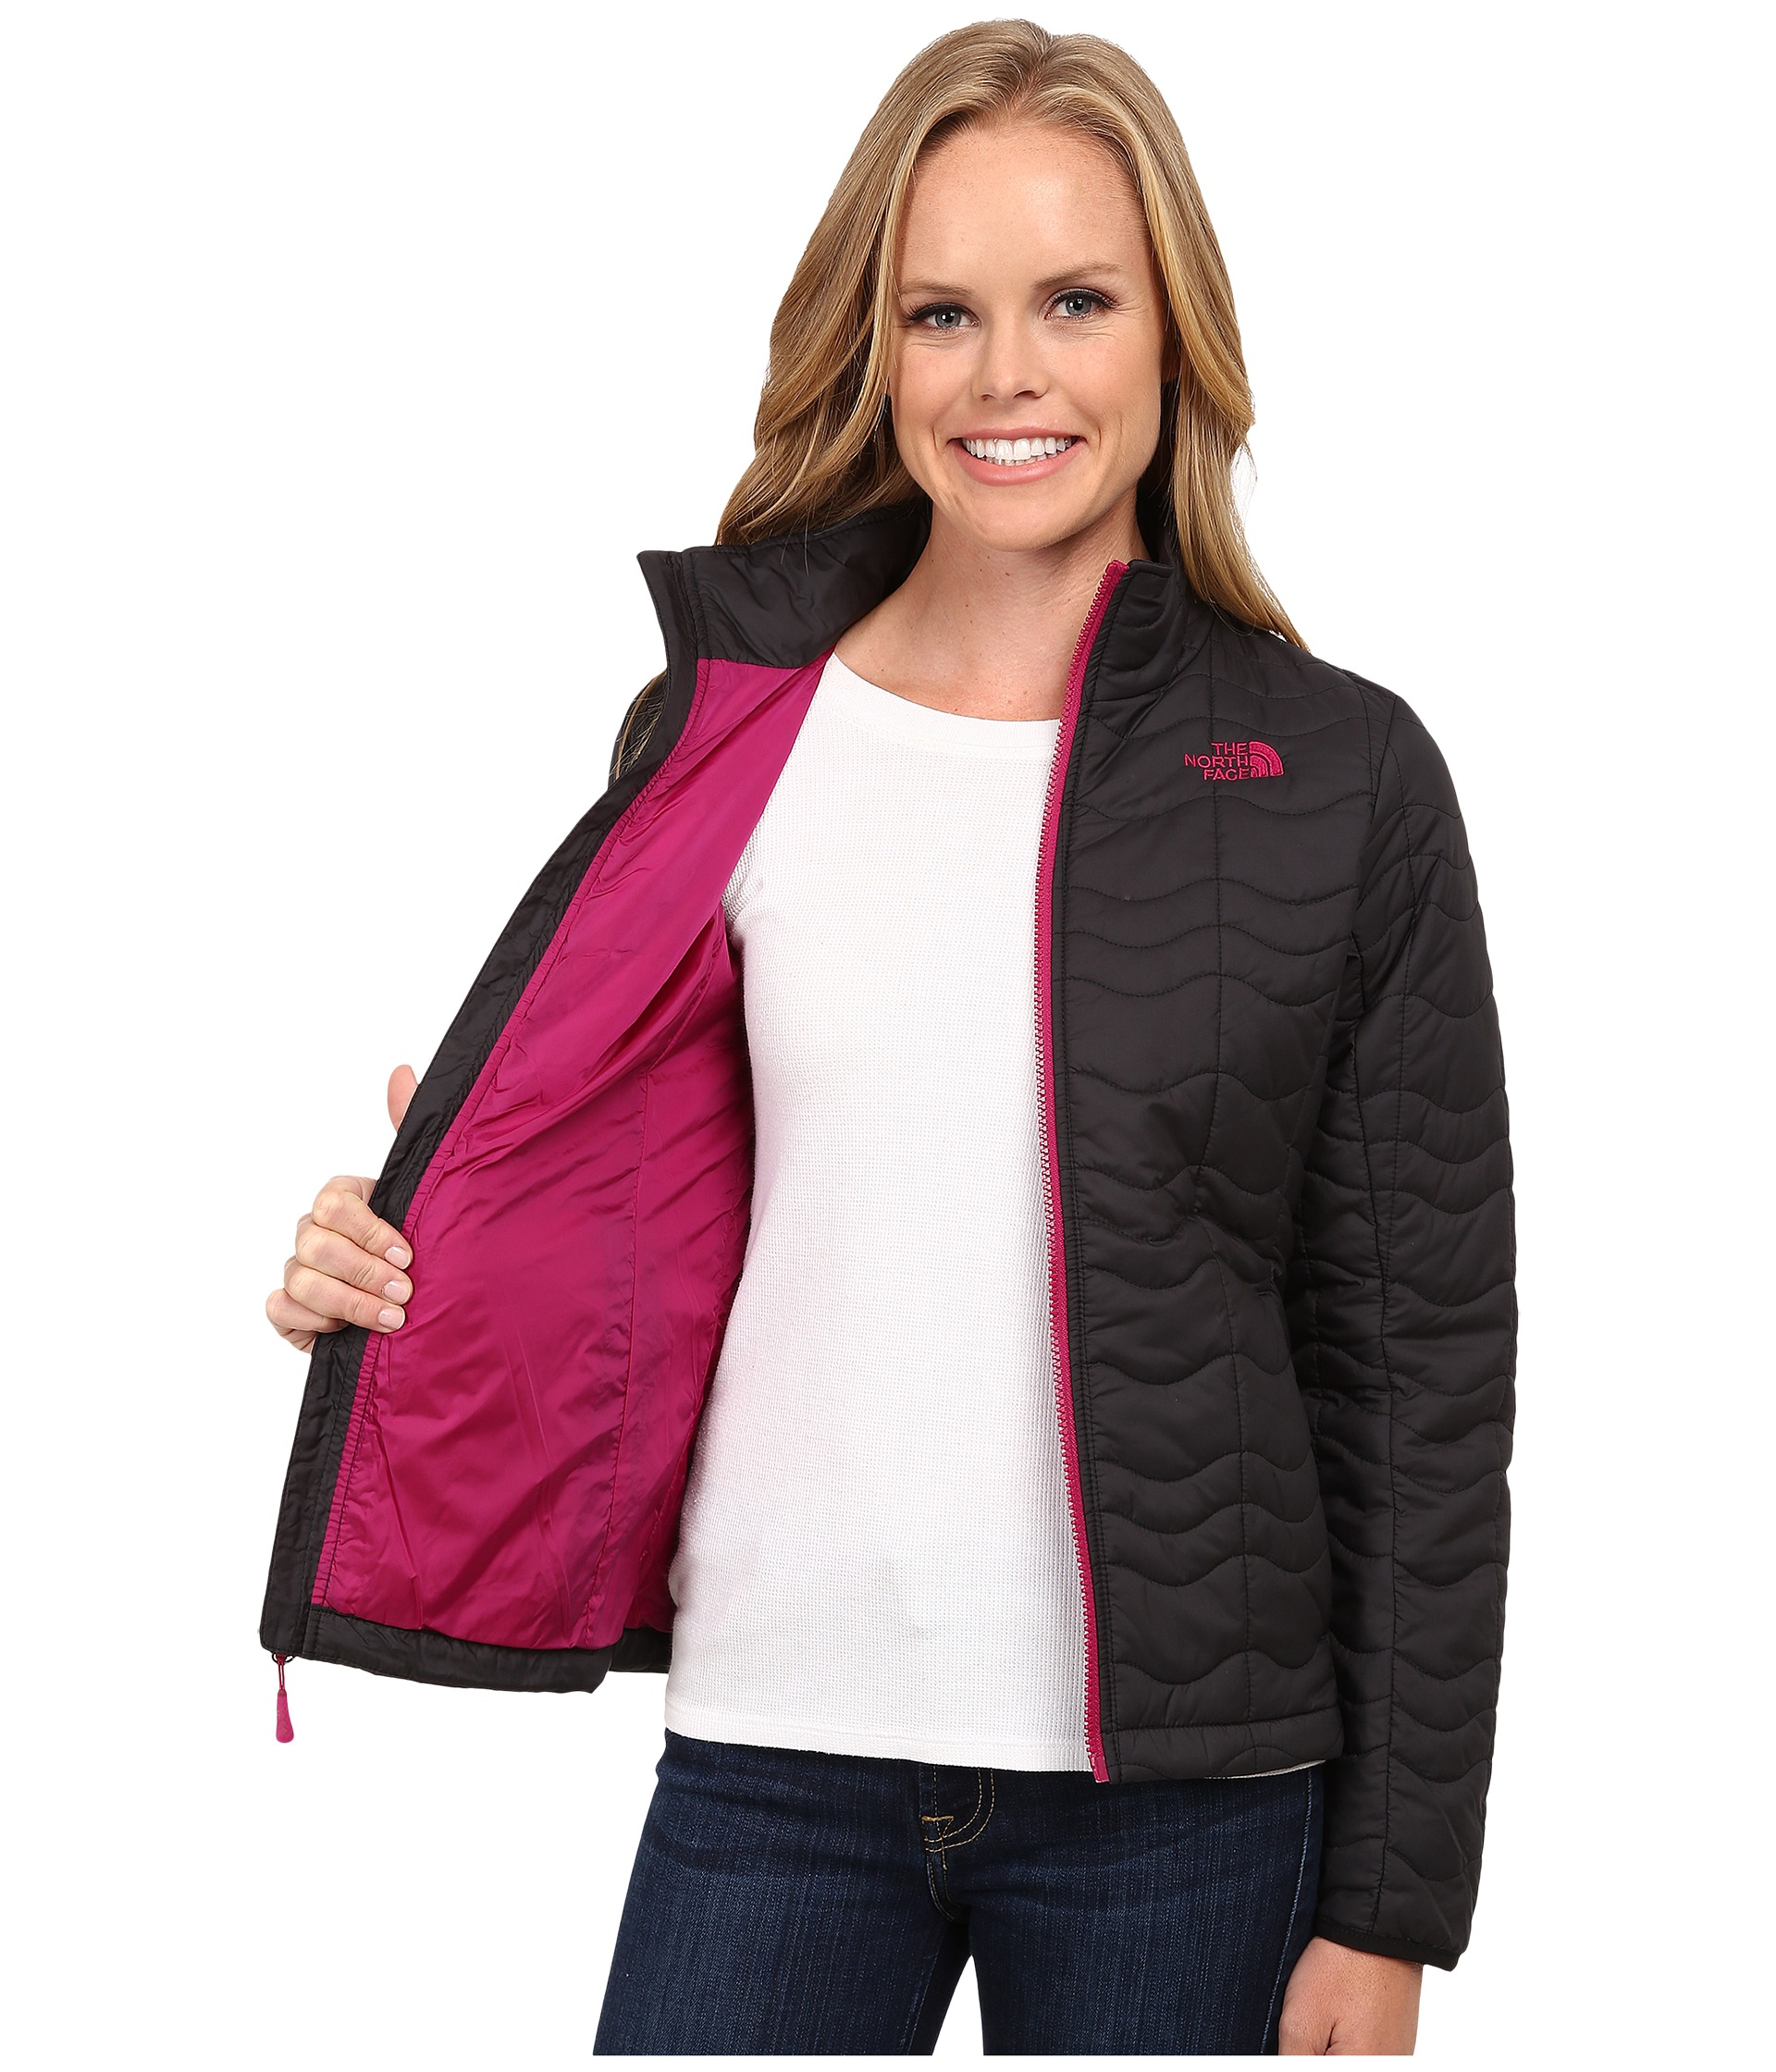 99c649f26 The North Face Bombay Jacket in Black - Lyst